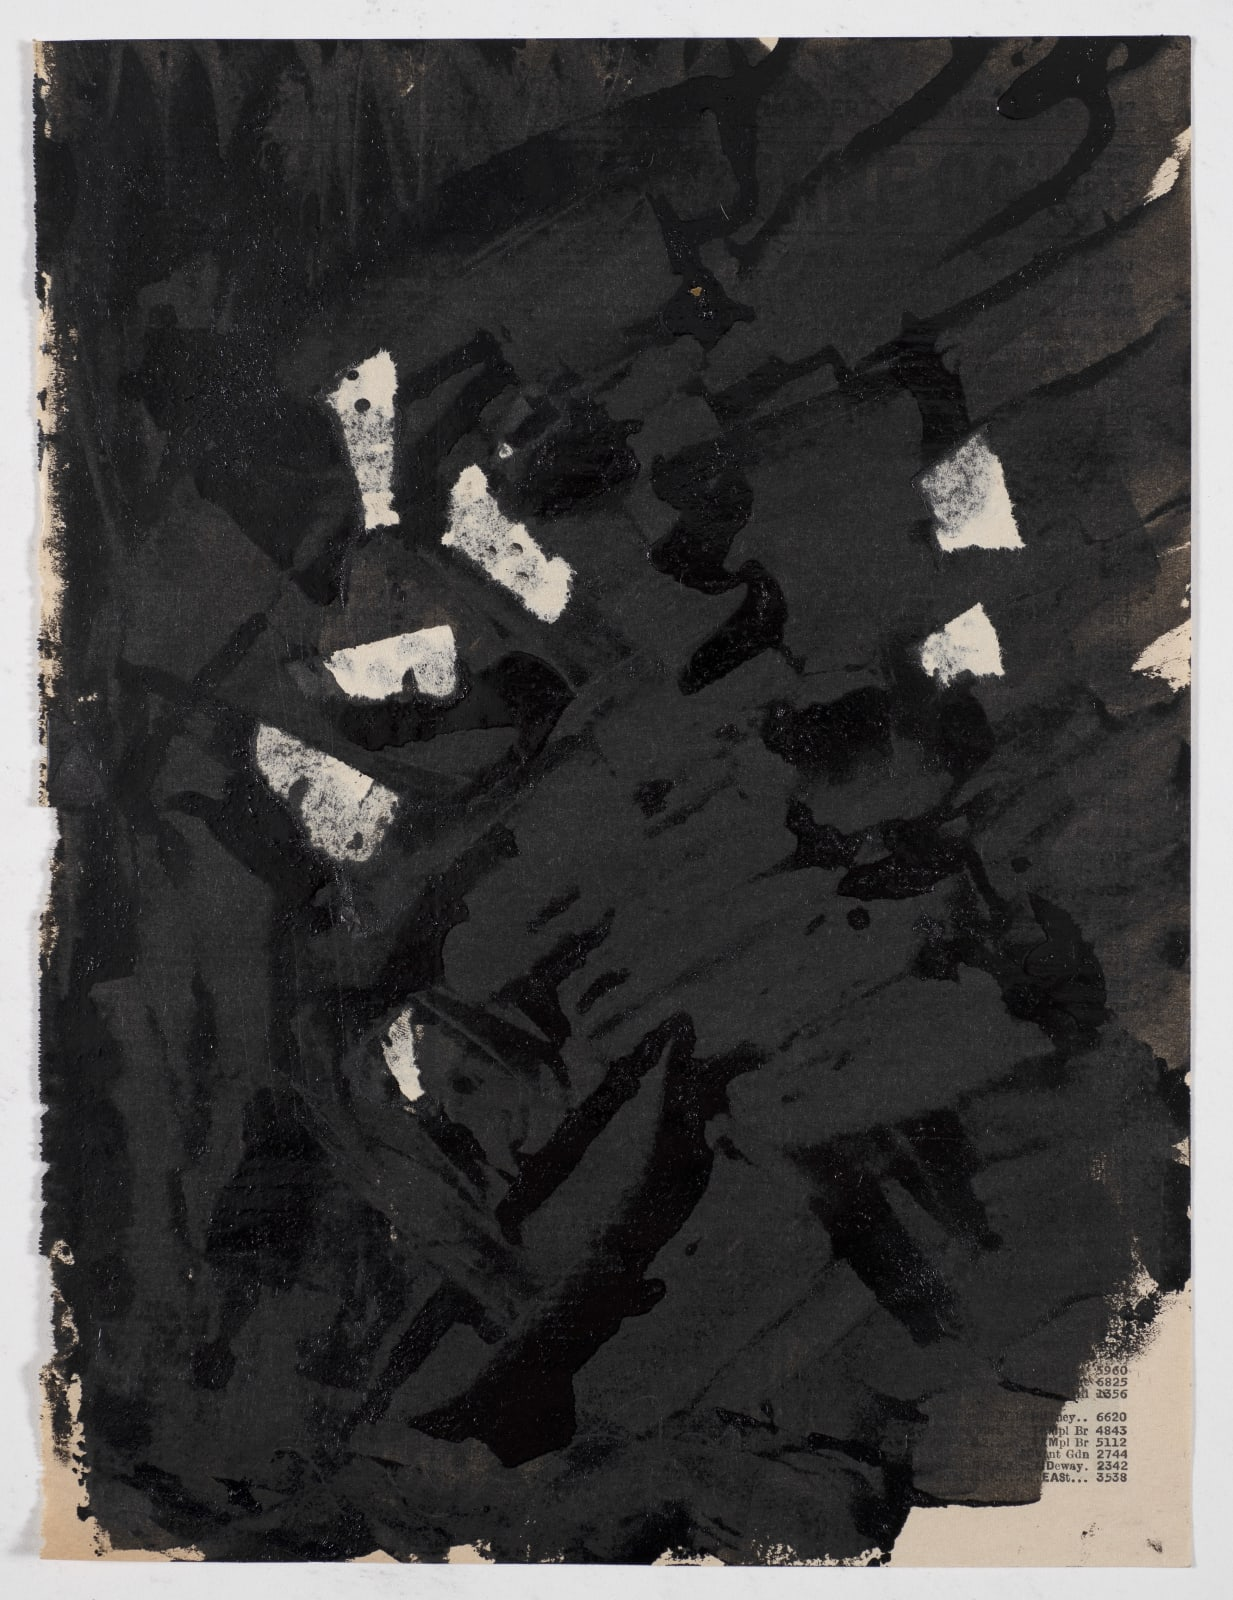 Untitled (London phone book series), c.1957-58 Oil on paper 17.5 x 20.7cm The Gustav Metzger Foundation